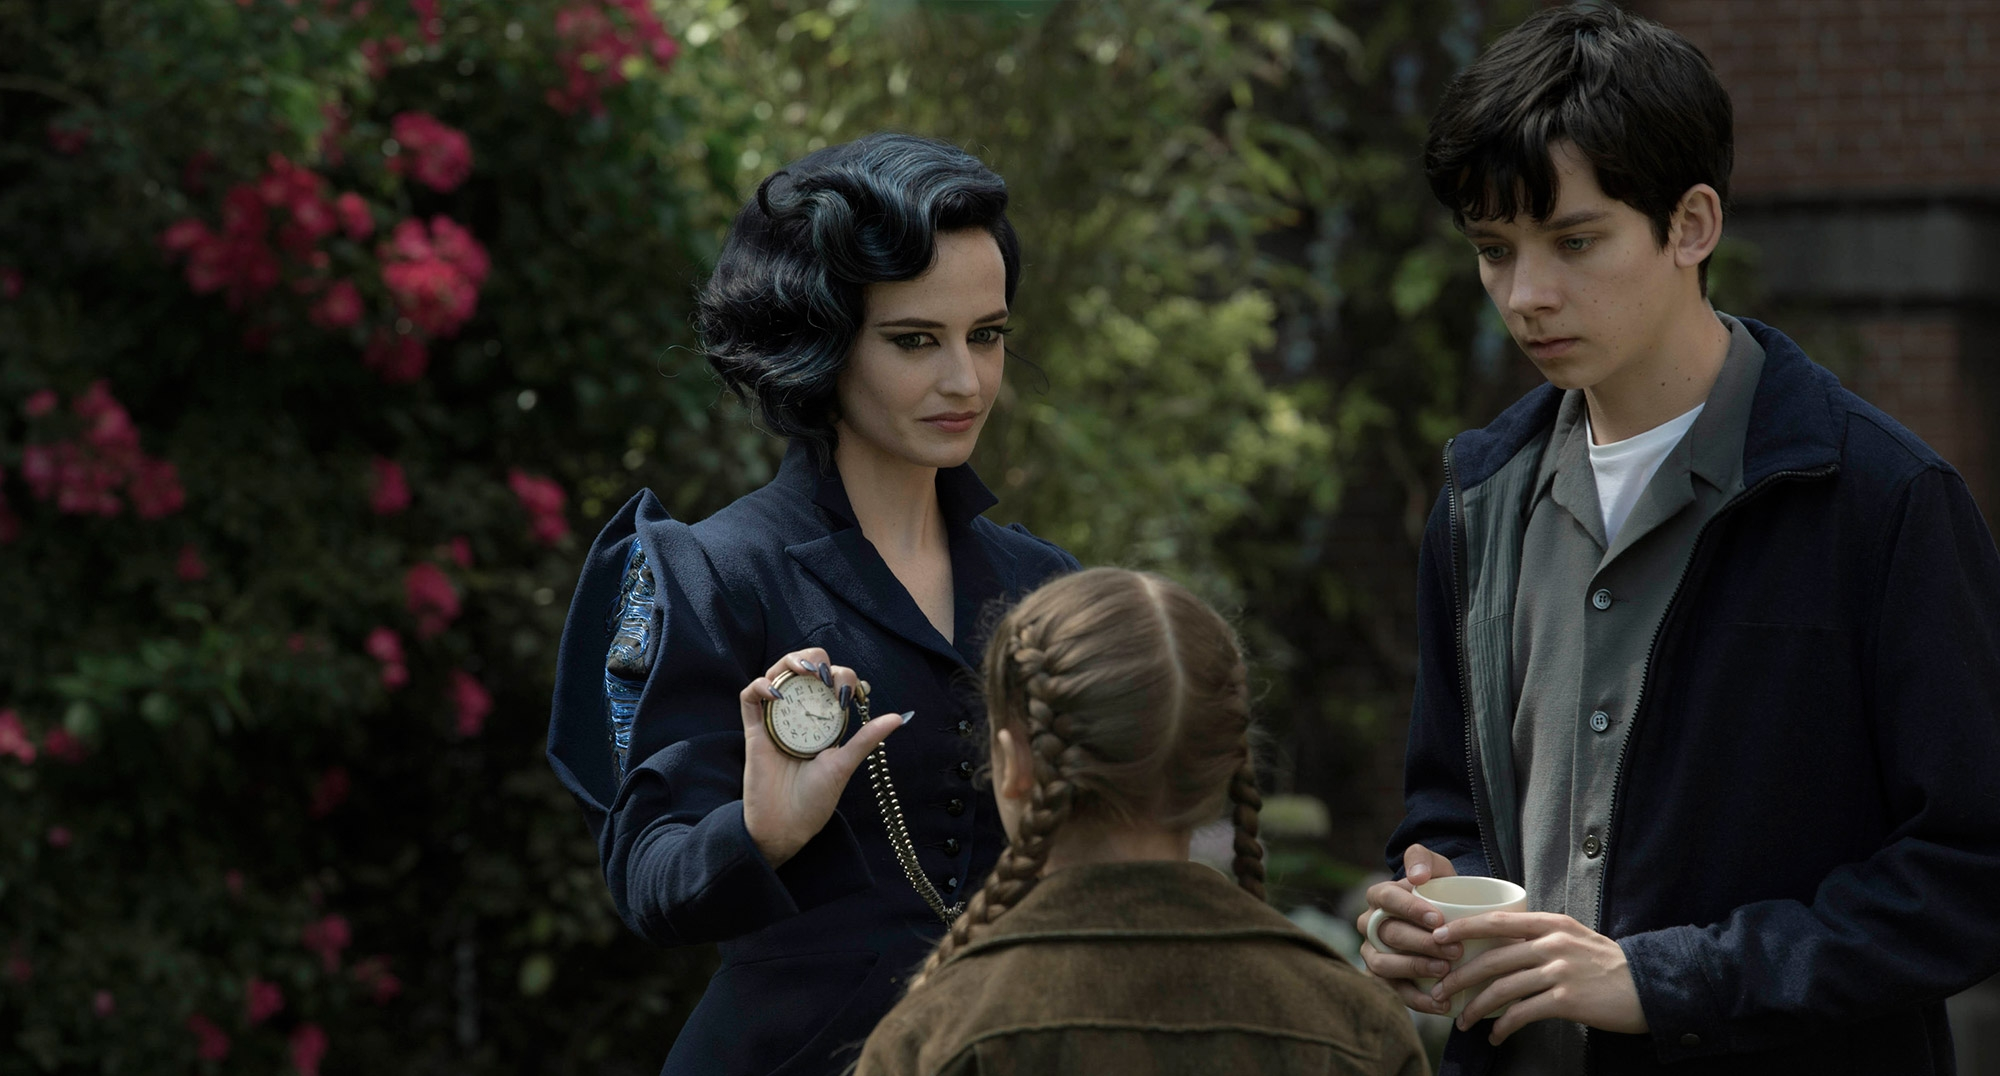 Get a Tour of 'Miss Peregrine's Home for Peculiar Children' in New Clip